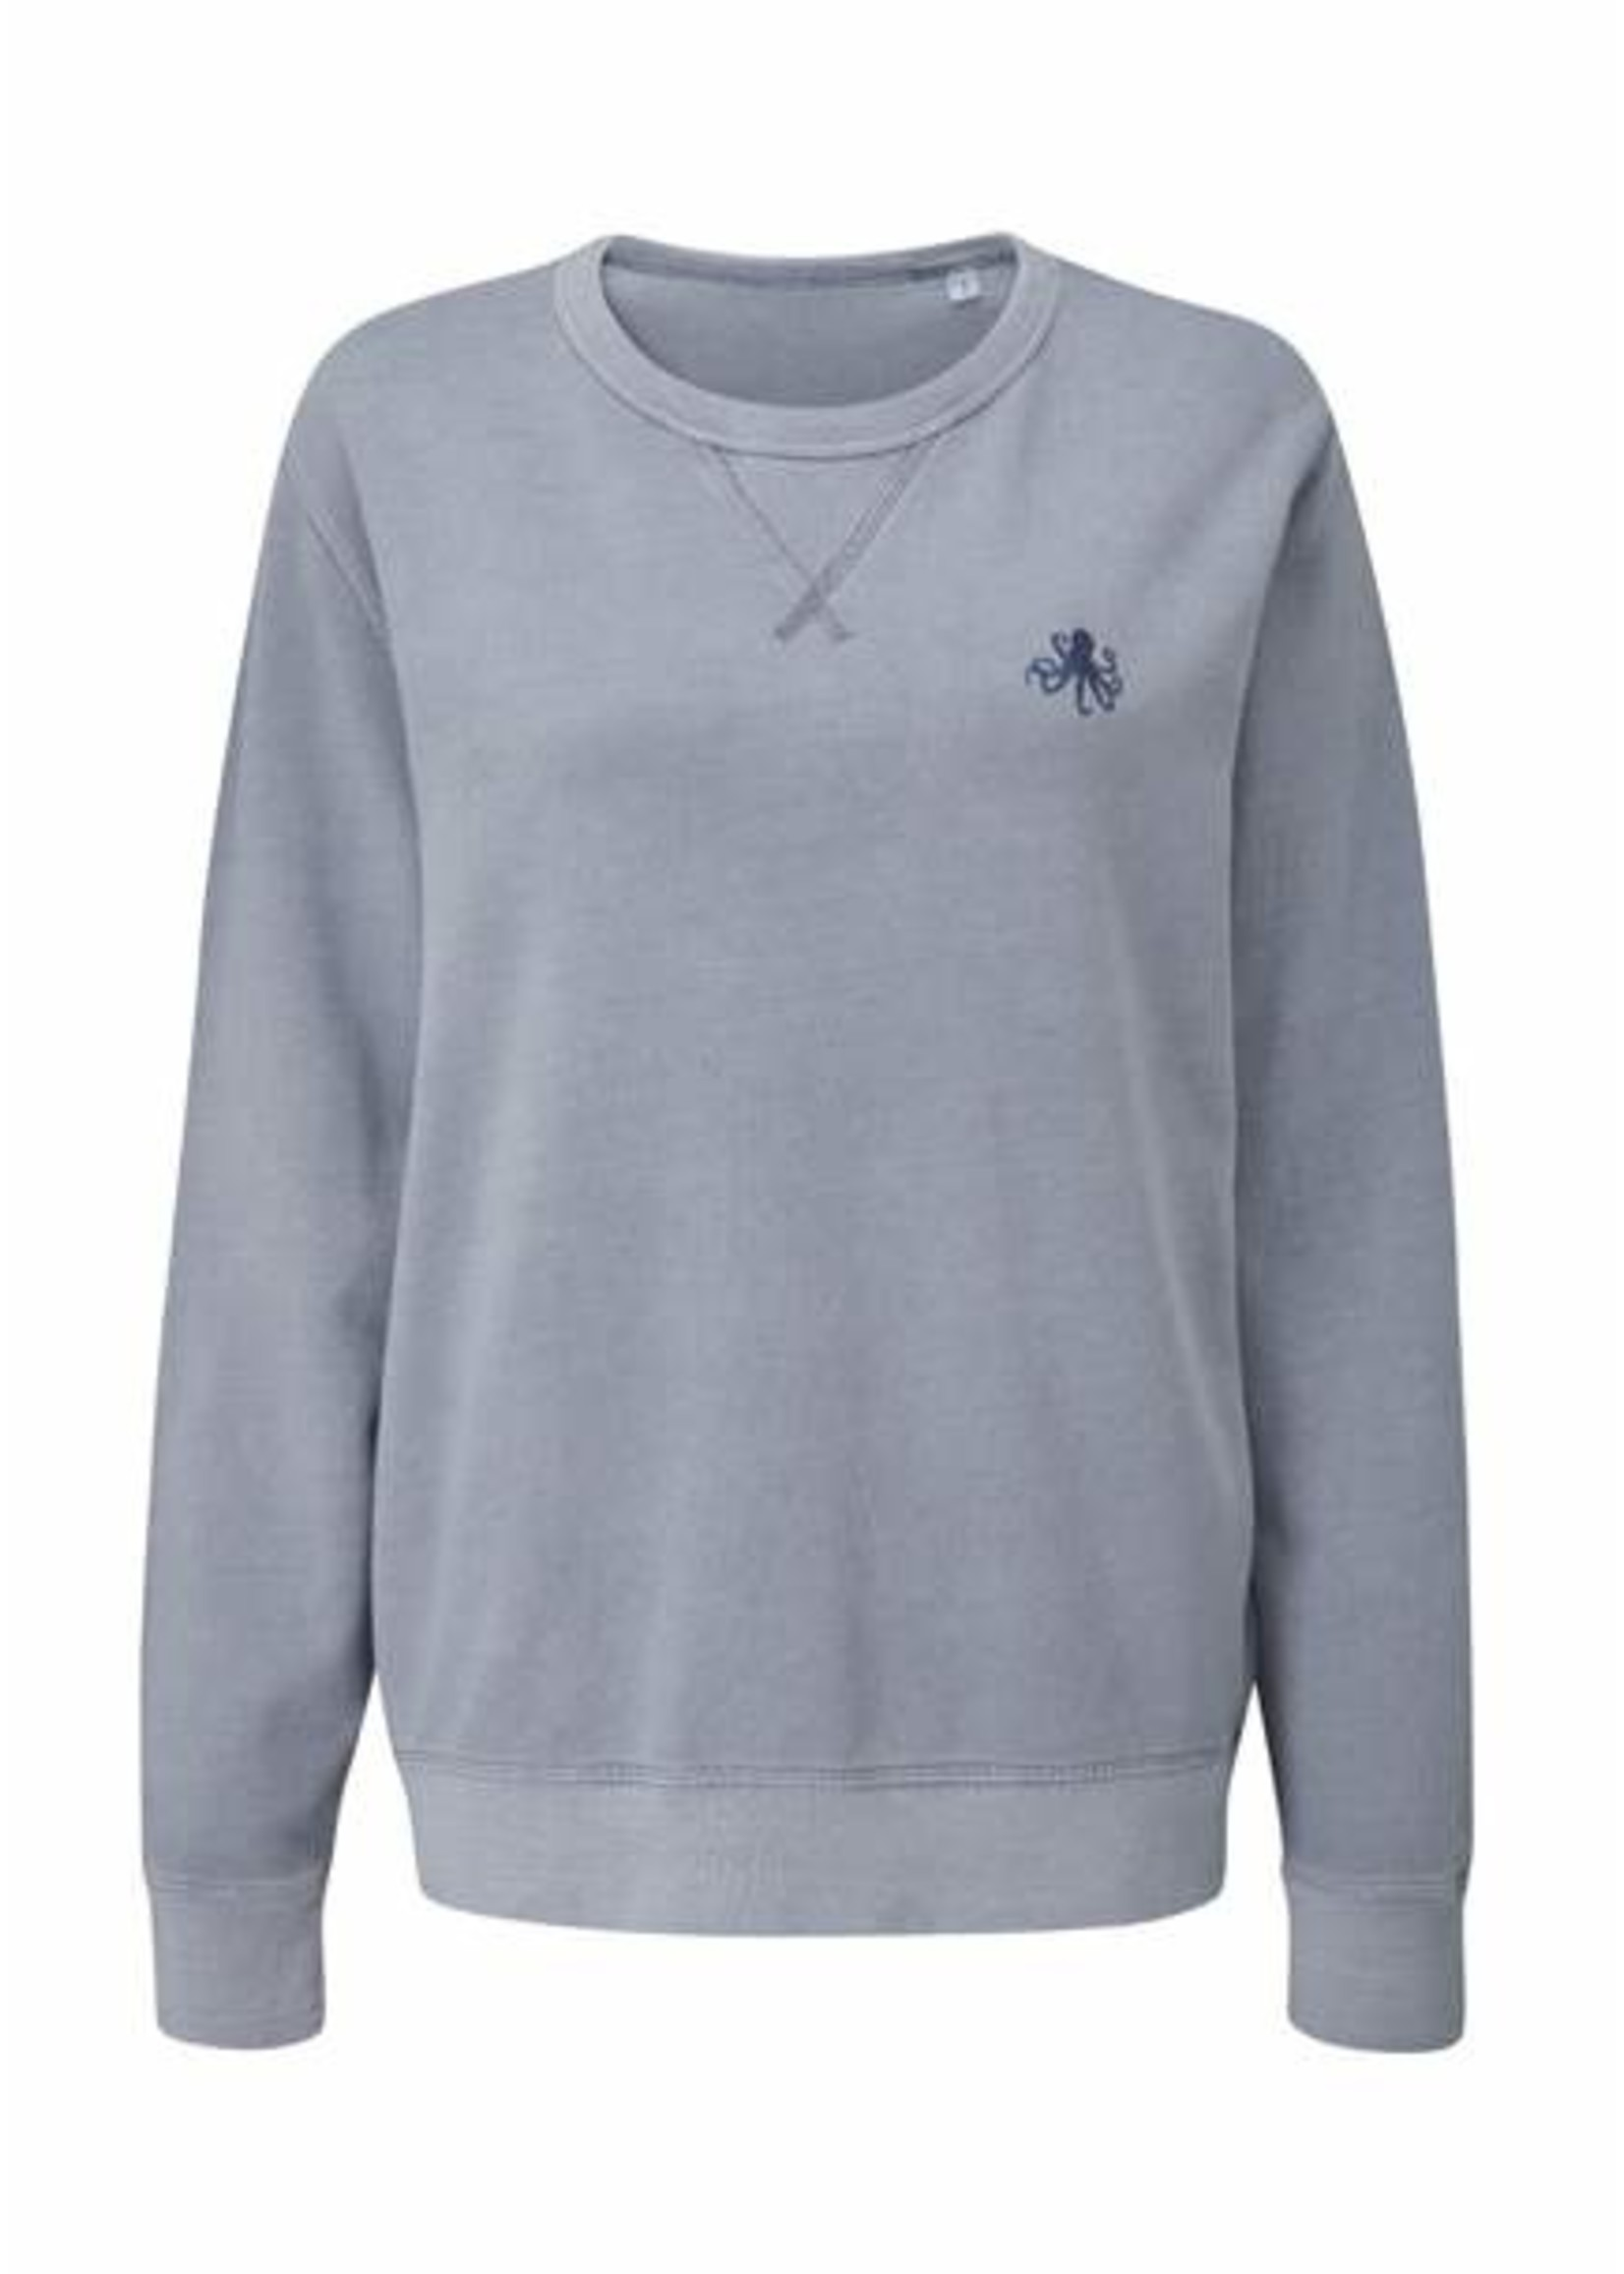 Fourth Element Fourth Element One Ocean Grey Sweater - vrouw